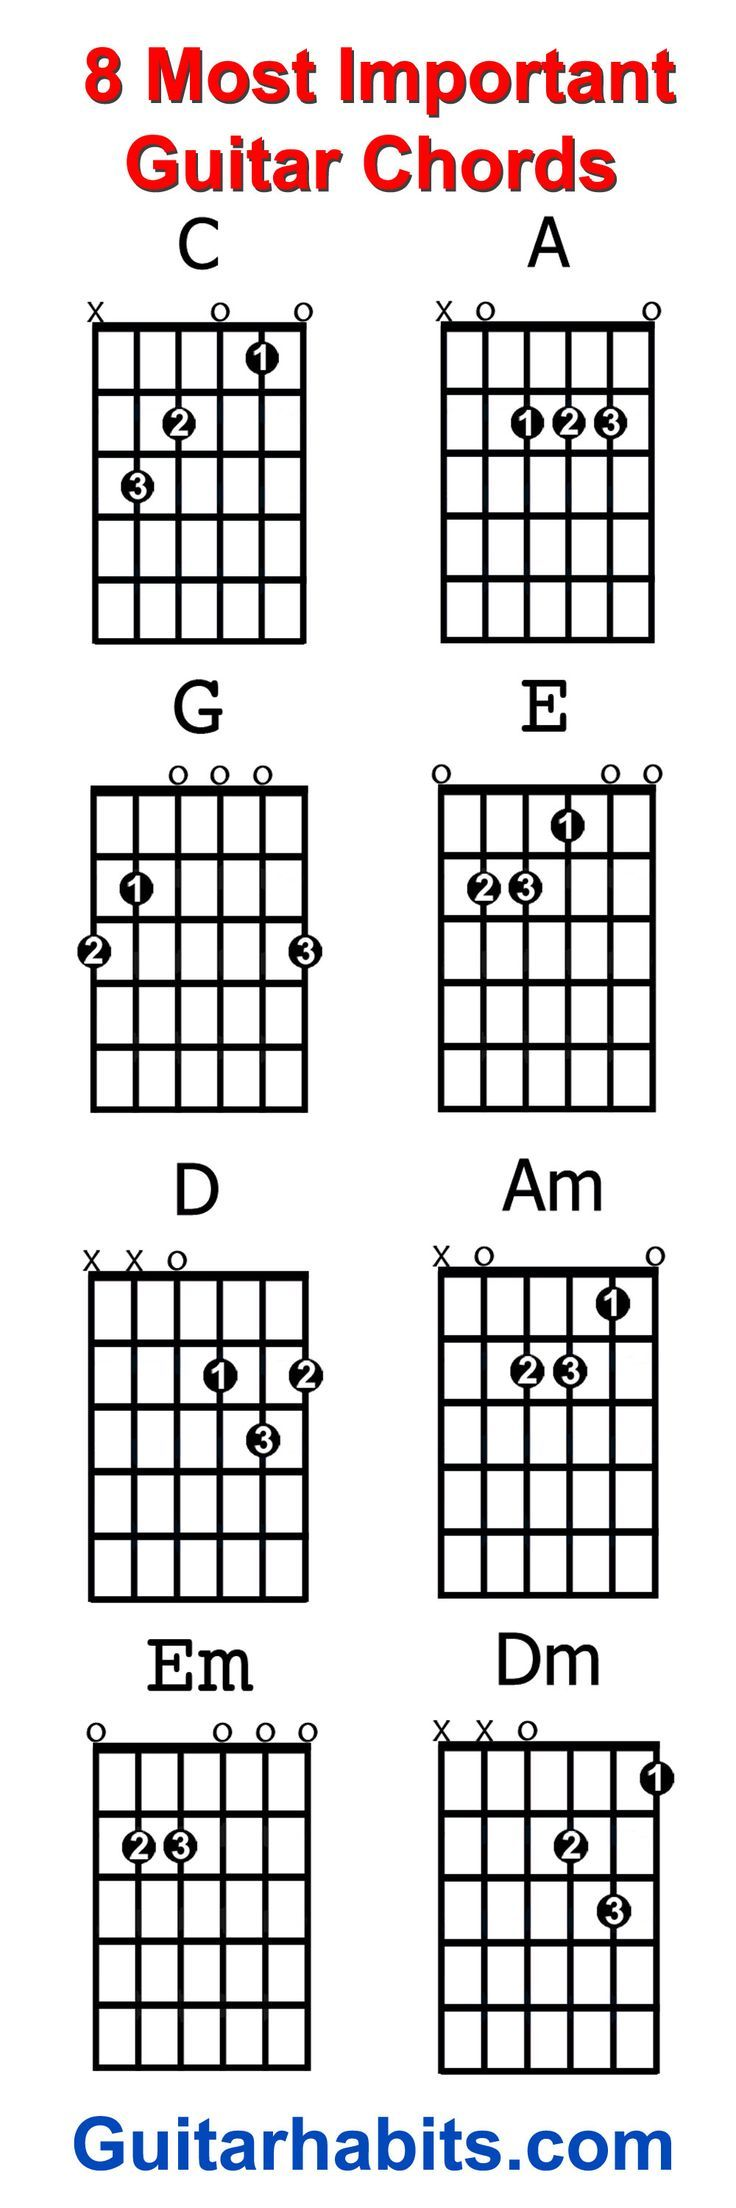 Learn Guitar Chords - A Guide for Beginners - Uberchord App